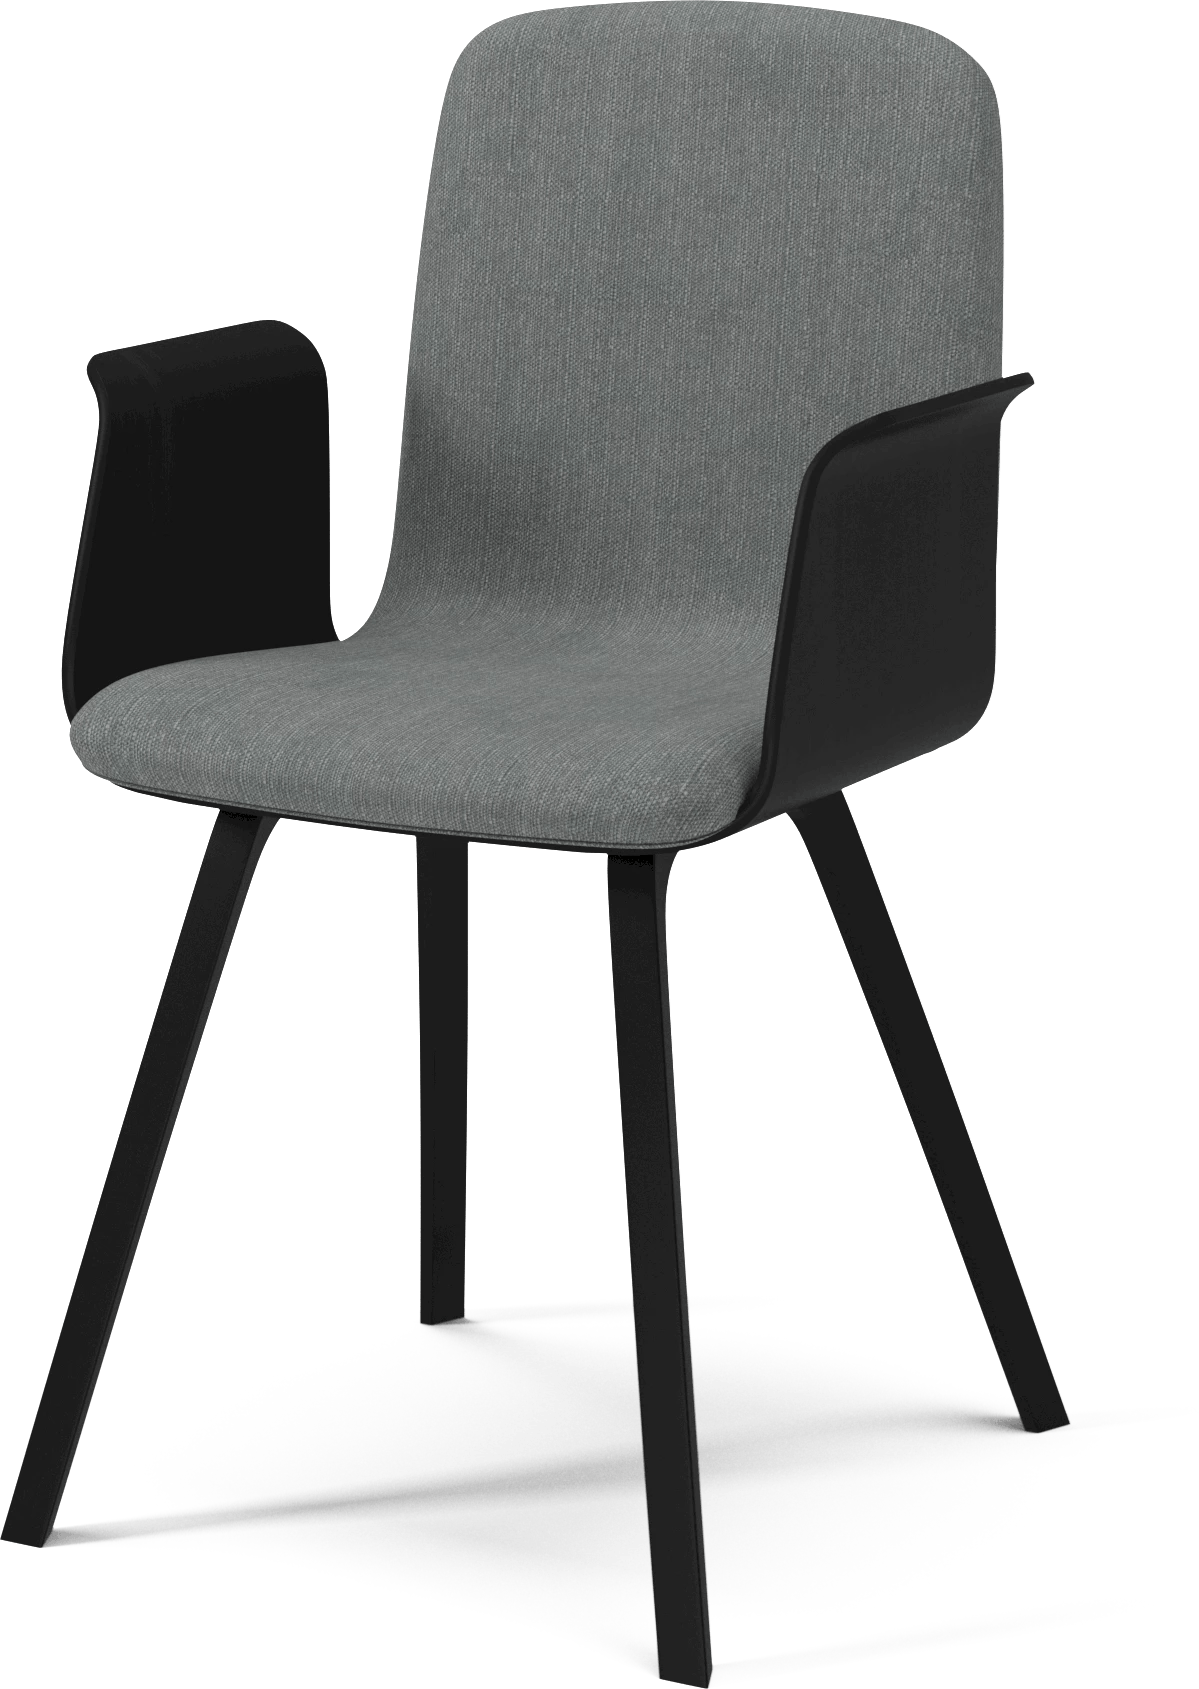 bolia grey palm dining chair with arms angle haute living